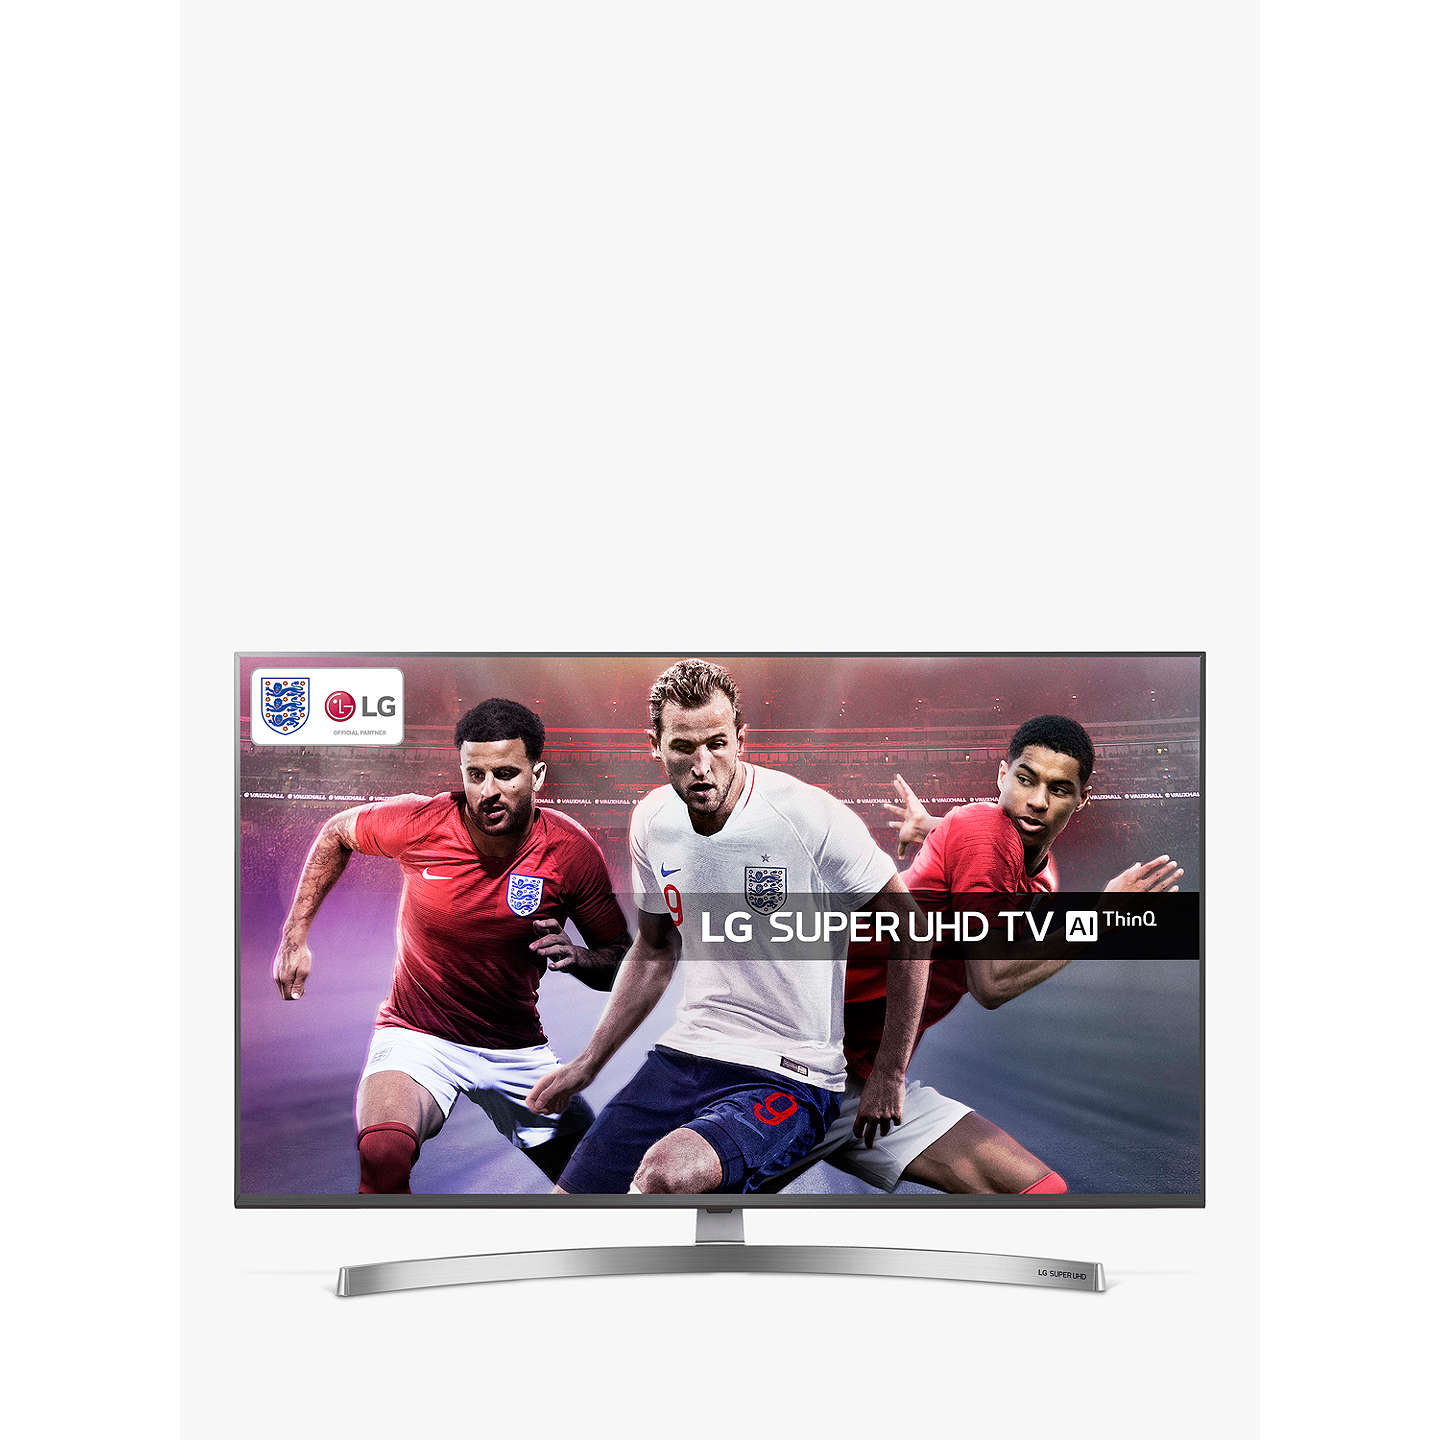 "BuyLG 49SK8100PLA LED HDR Super UHD 4K Ultra HD Smart TV, 49"" with Freeview Play/Freesat HD, Cinema Screen Design, Dolby Atmos & Crescent Stand, Silver Online at johnlewis.com"